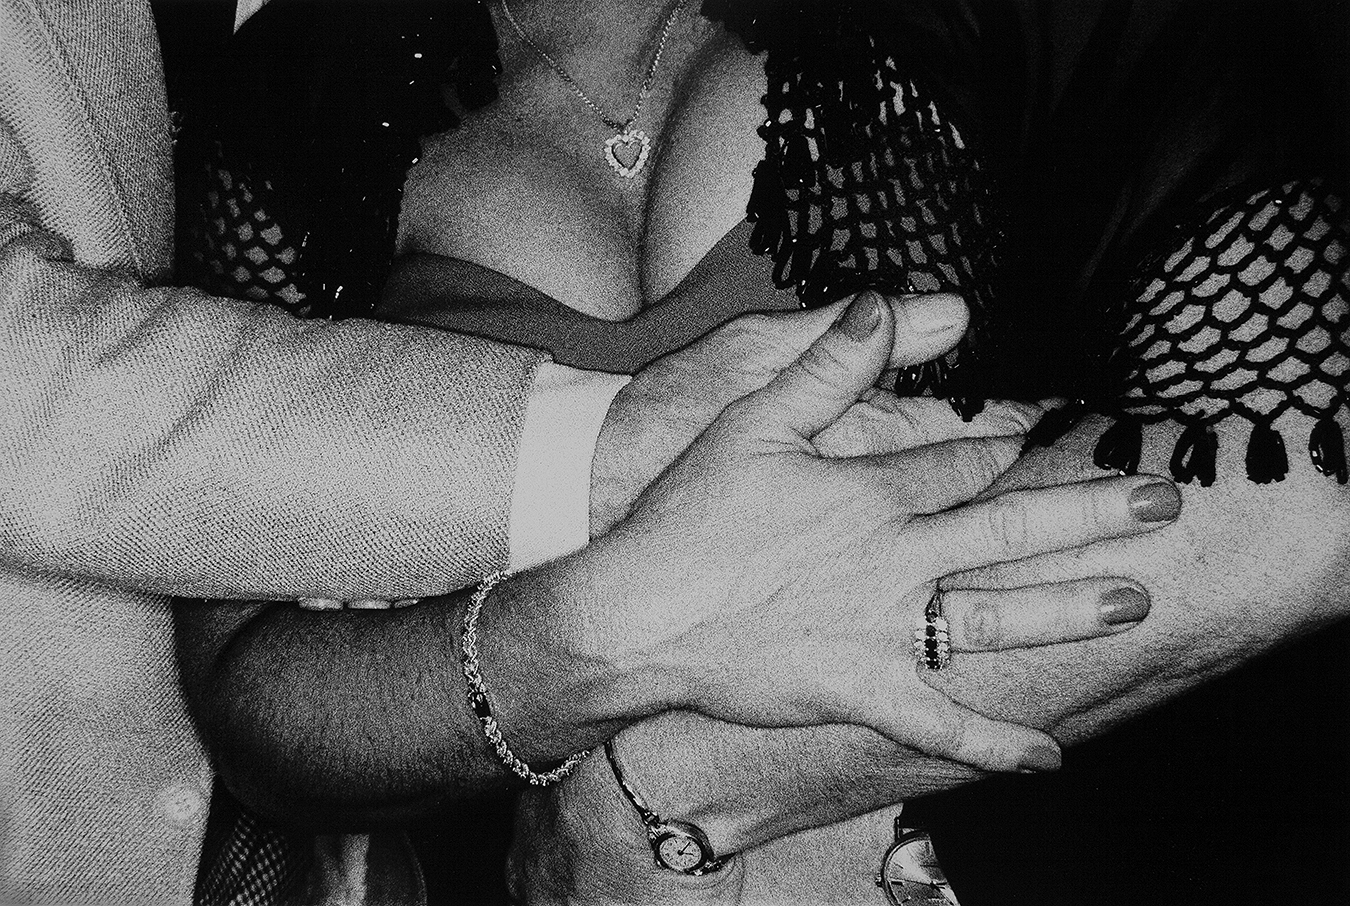 FROLICH-HAND-ON-LADY'S-BREAST_8894